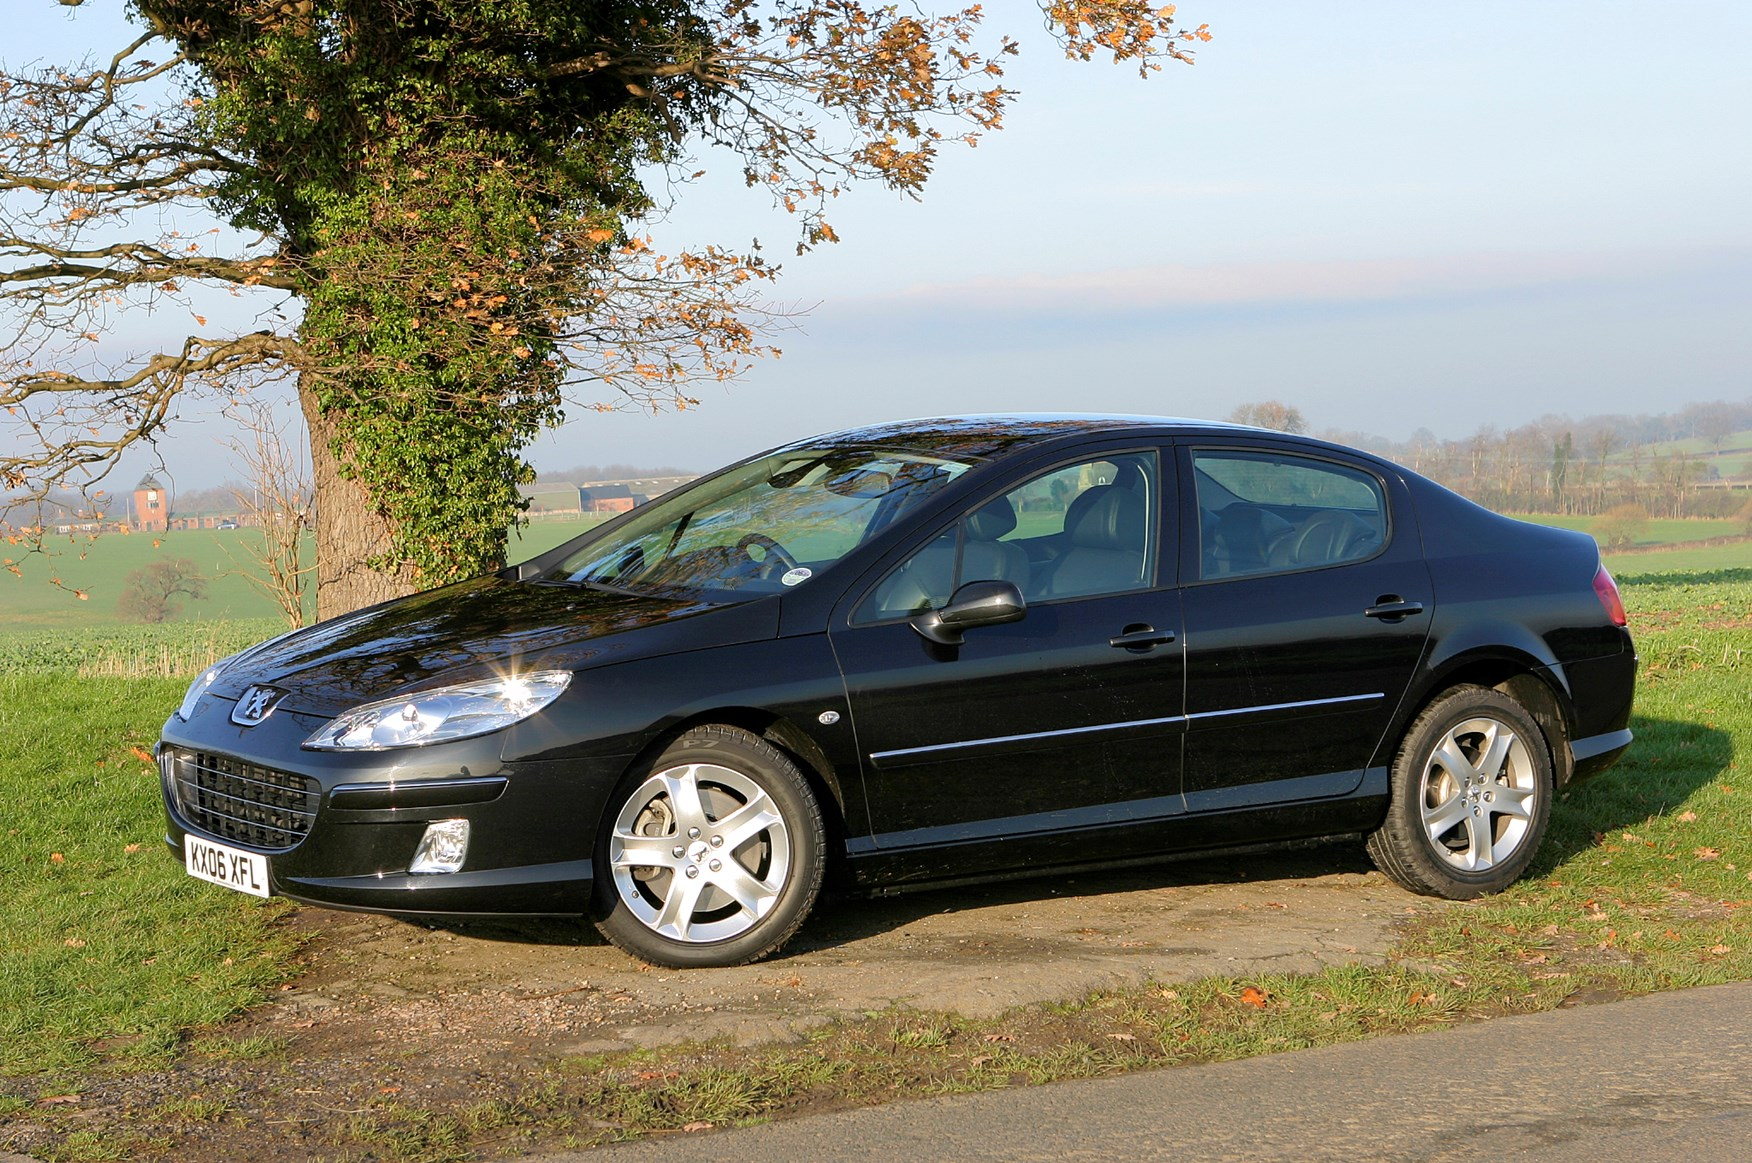 Peugeot 407 Saloon Review (2004 - 2011)